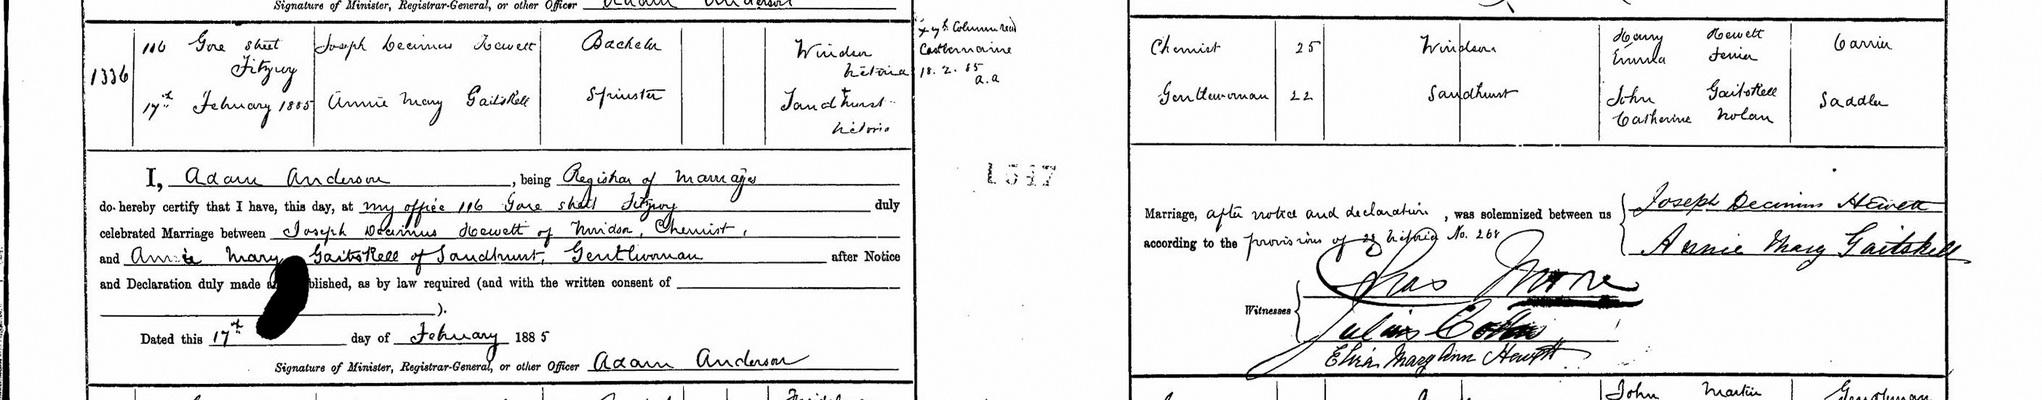 Joseph Decimus Hewett and Annie May Gaitskell marriage certificate